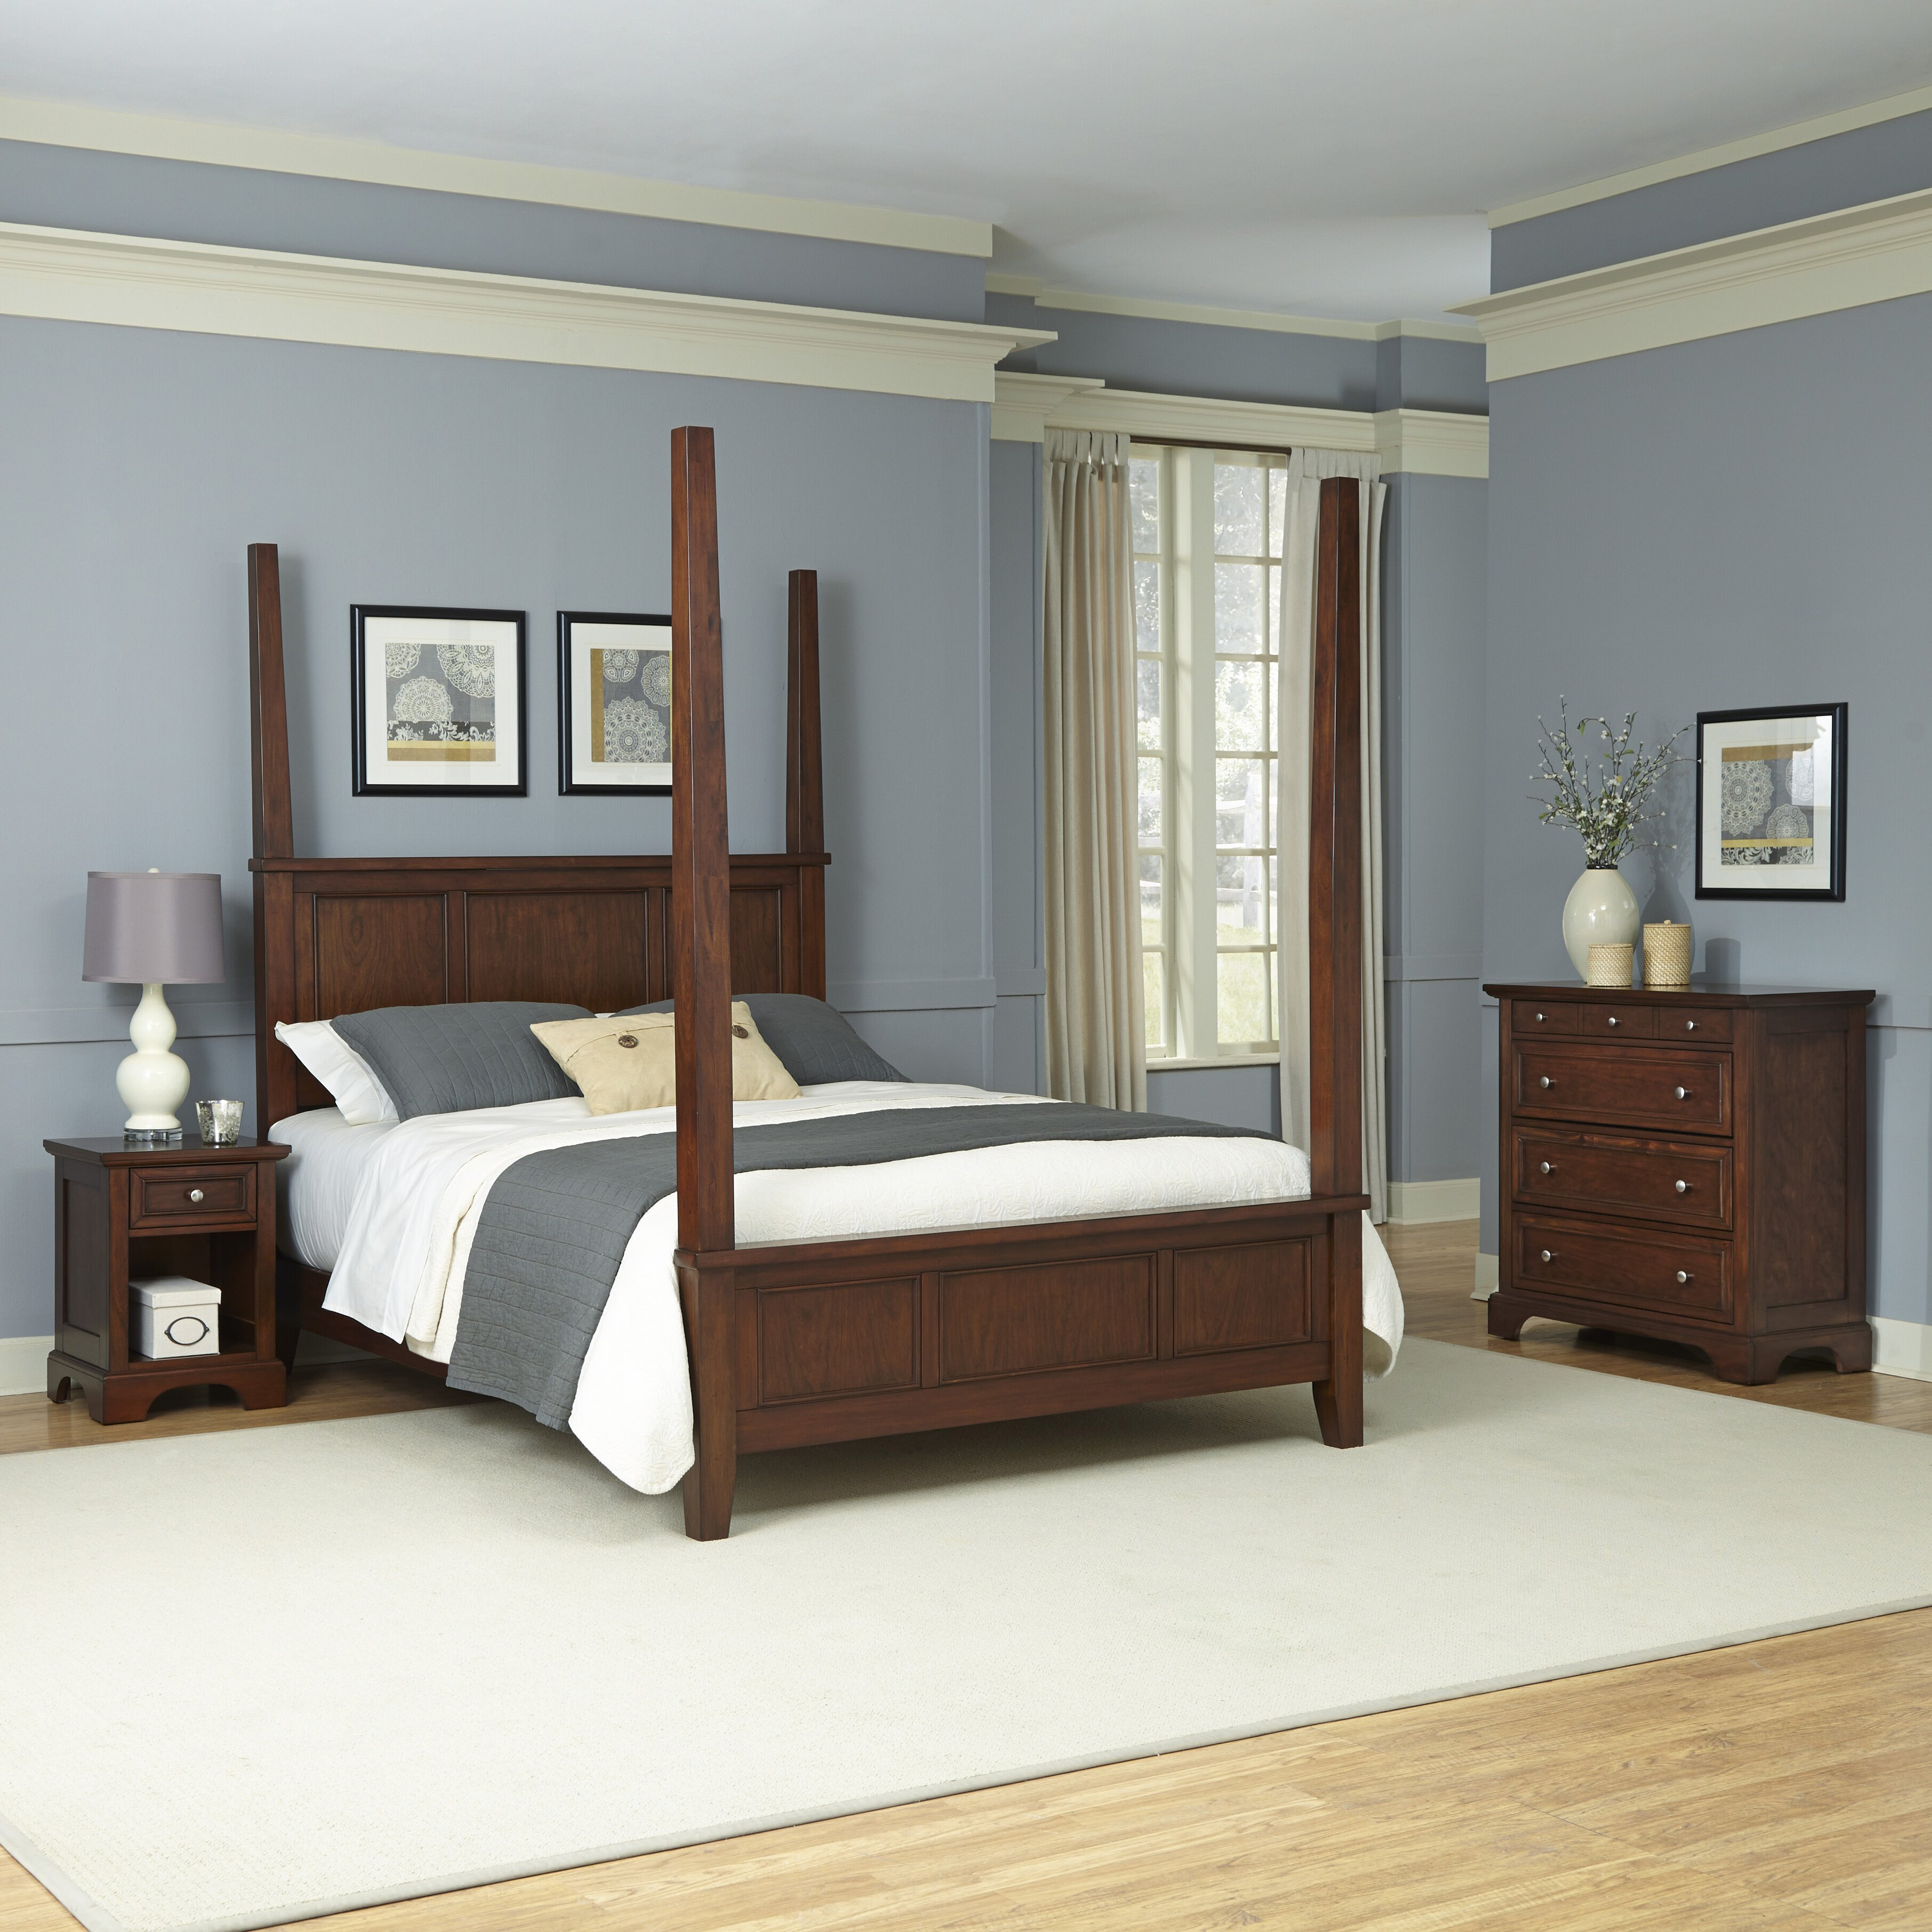 Three posts borden four poster 3 piece bedroom set wayfair for 3 bedroom set